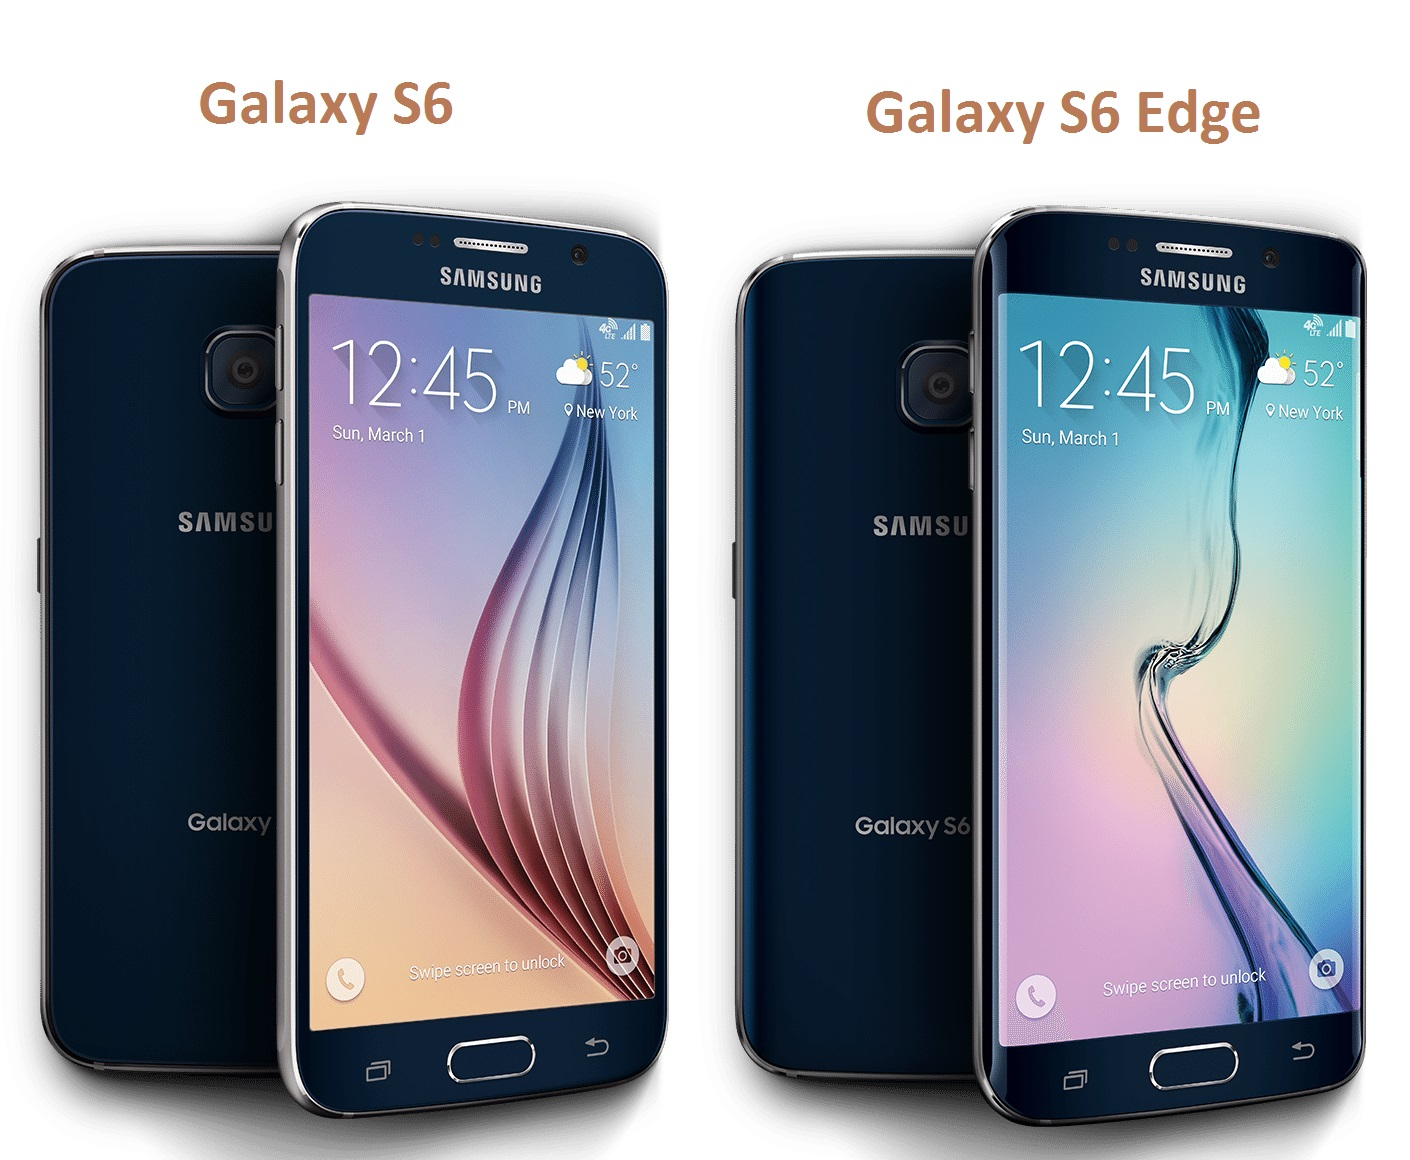 Samsung Galaxy S6 and S6 Edge: Unique Features - BOK face